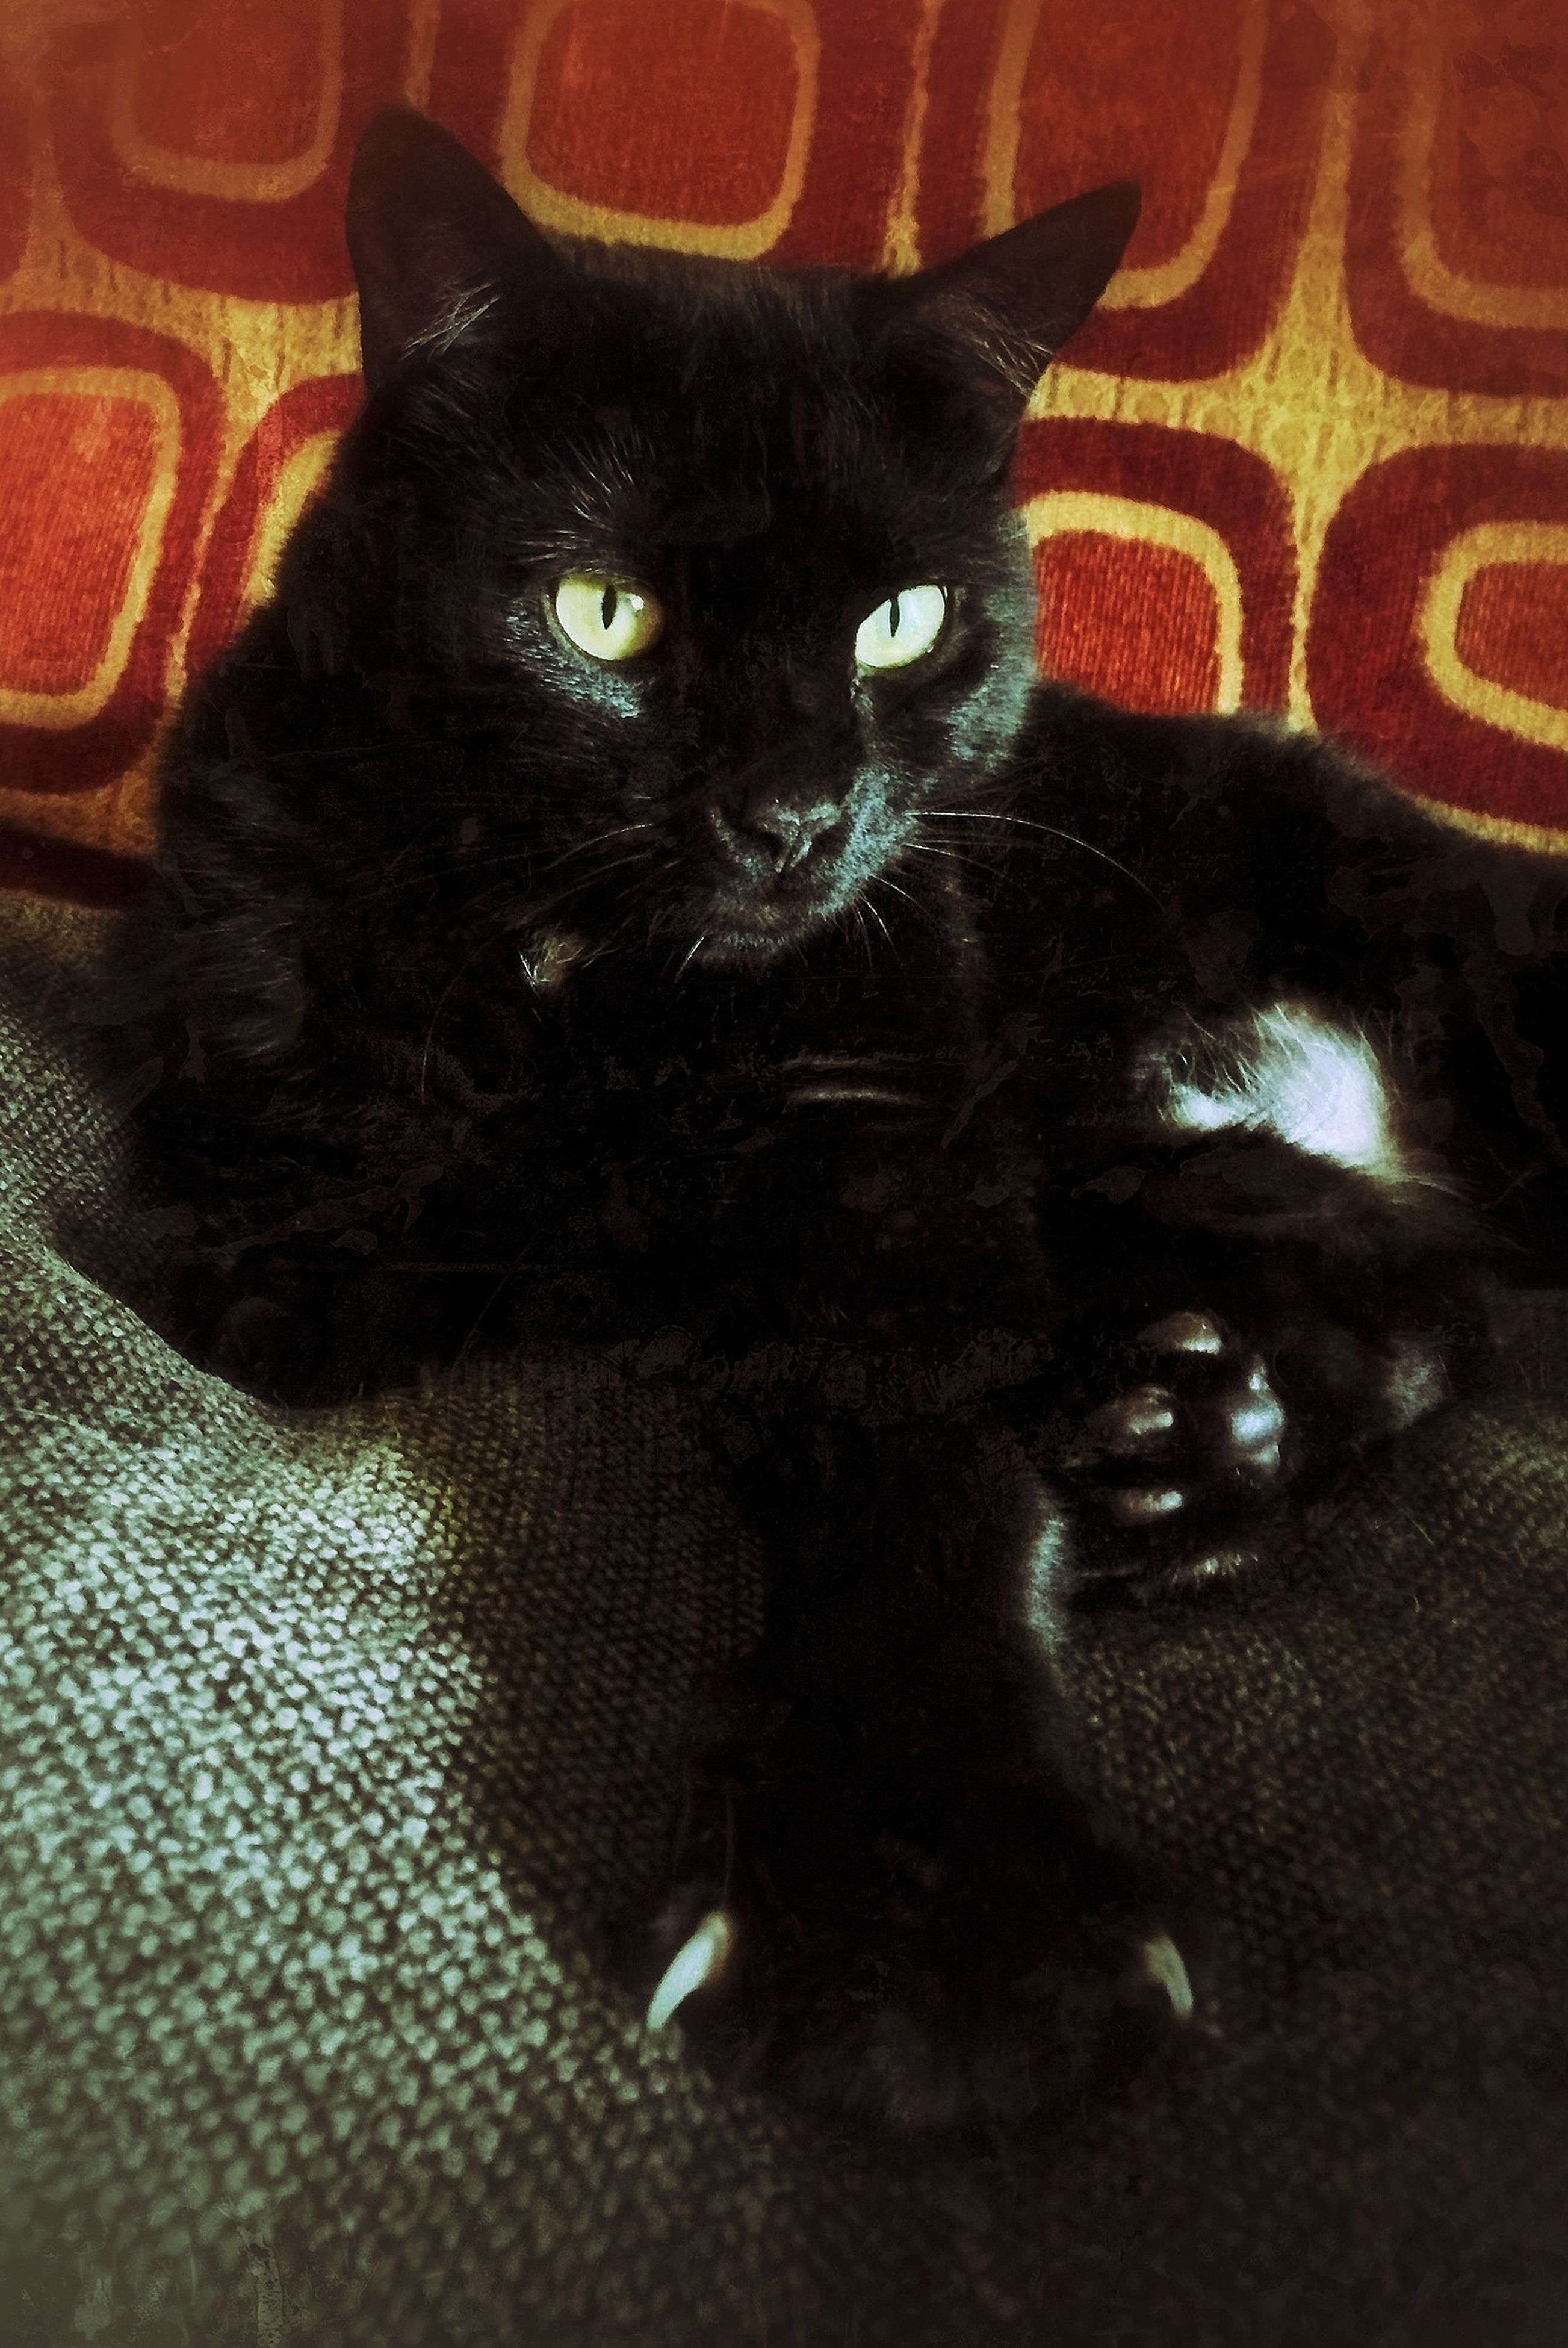 pets, domestic animals, indoors, animal themes, one animal, mammal, domestic cat, portrait, looking at camera, cat, black color, relaxation, feline, close-up, sofa, home interior, whisker, animal head, lying down, bed